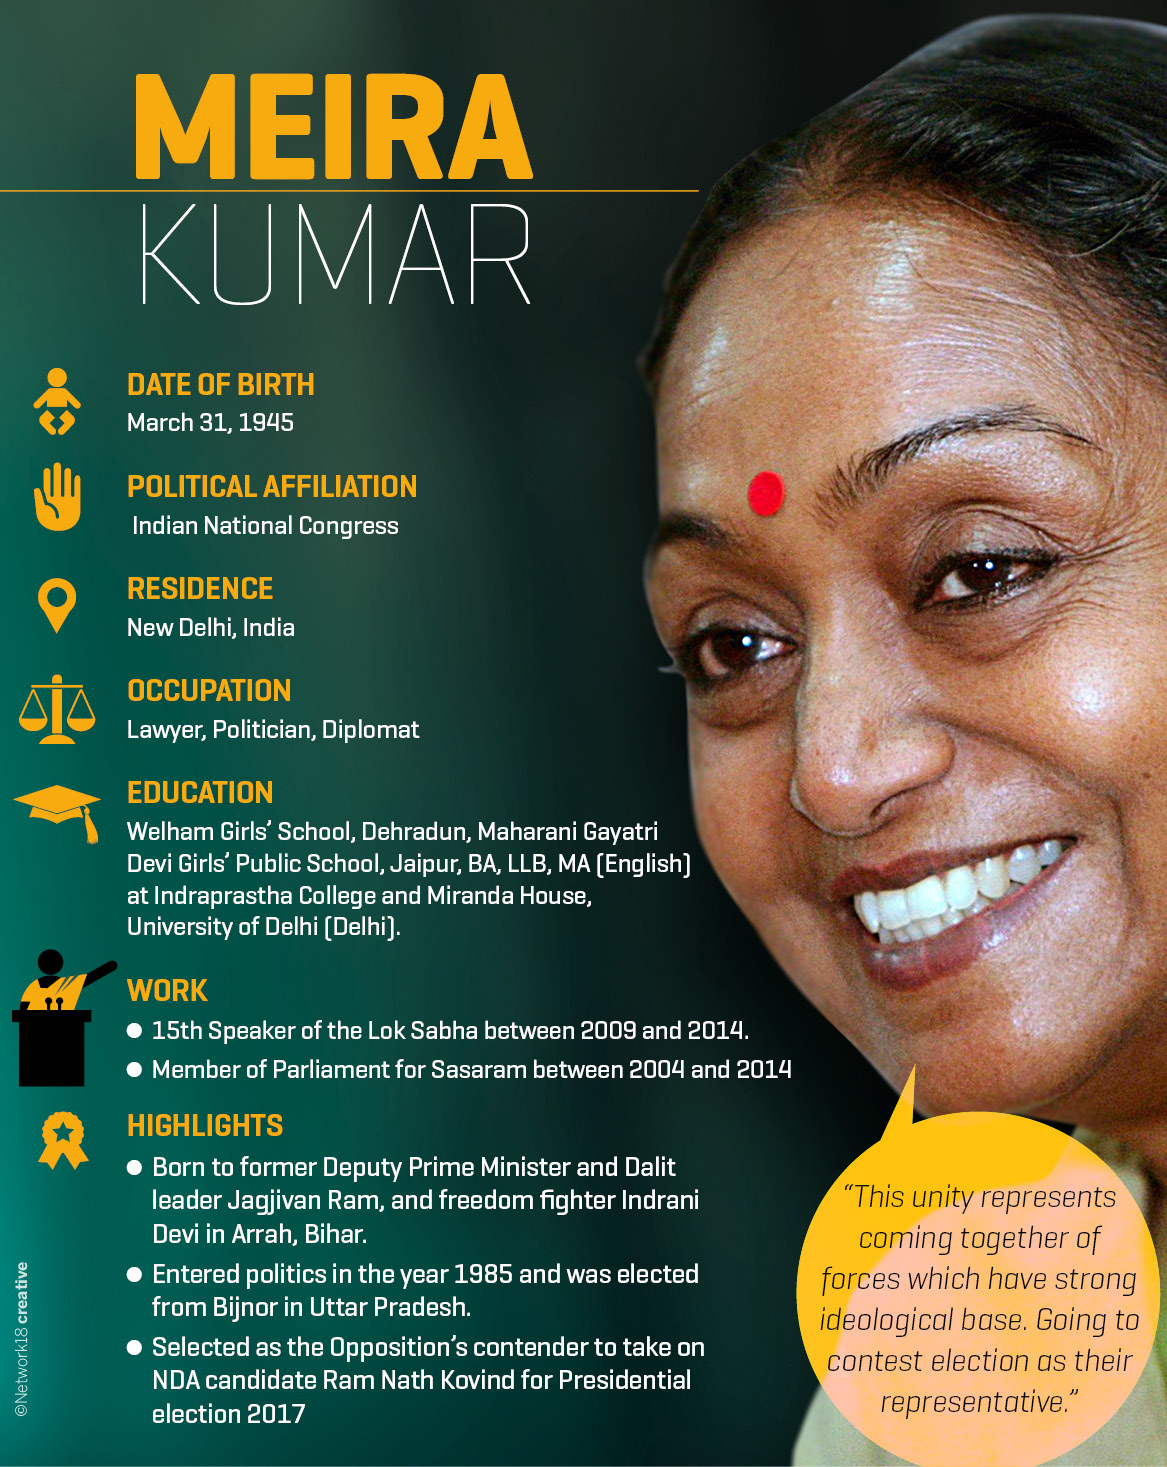 Here's all you need to know about Meira Kumar, the Opposition's Presidential candidate.